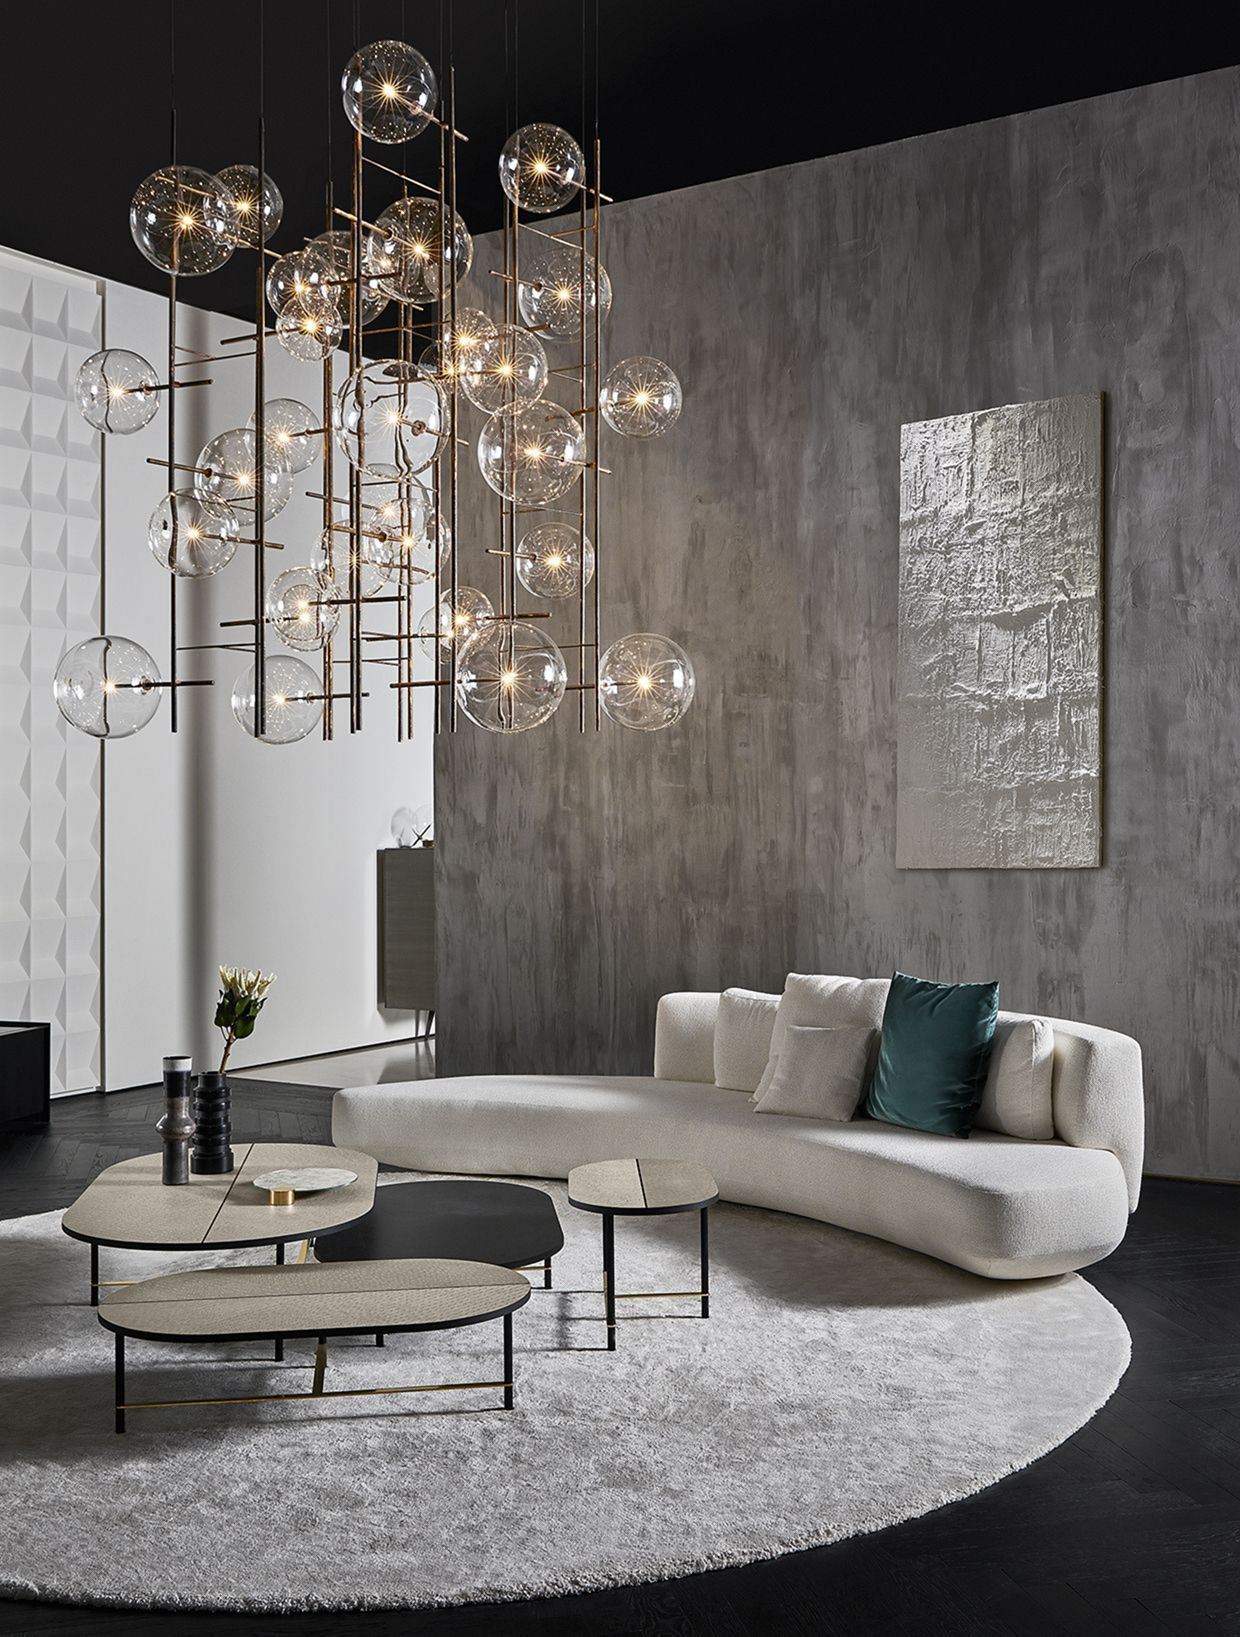 25 Elegant Minimalist Living Room Ideas For The Comfort Of You And Your Guests Minimalis